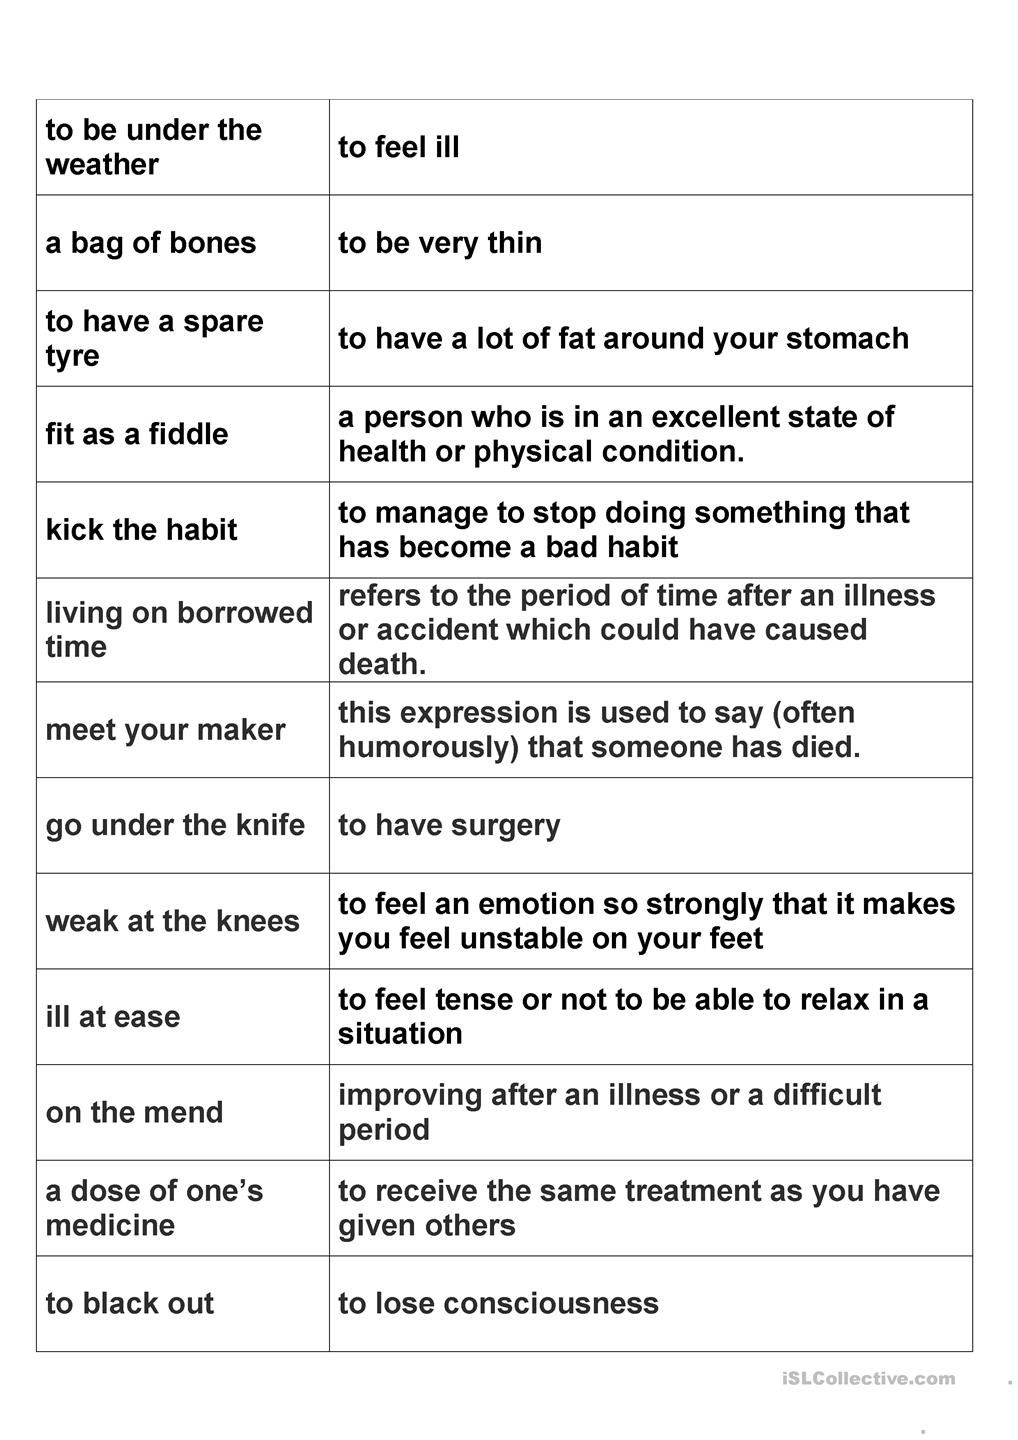 Health idioms | ESL worksheets of the day | Pinterest | English ...